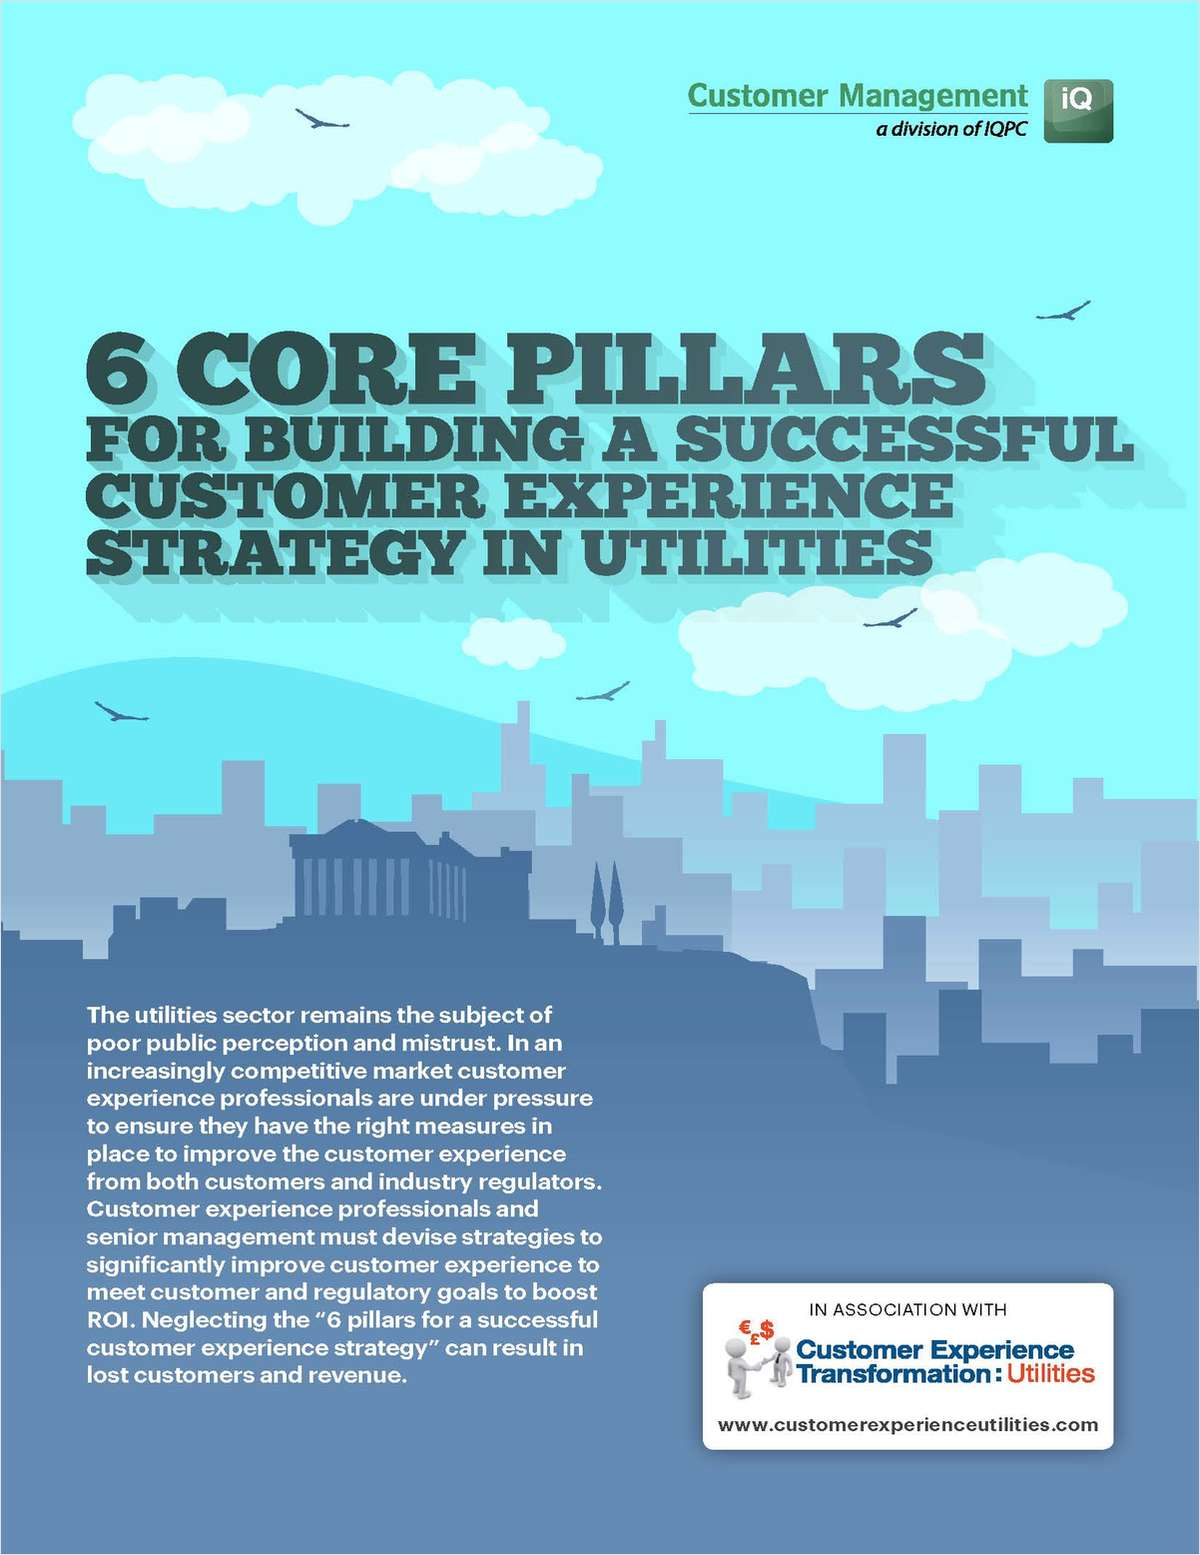 6 Core Pillars for building a successful customer experience strategy in utilities